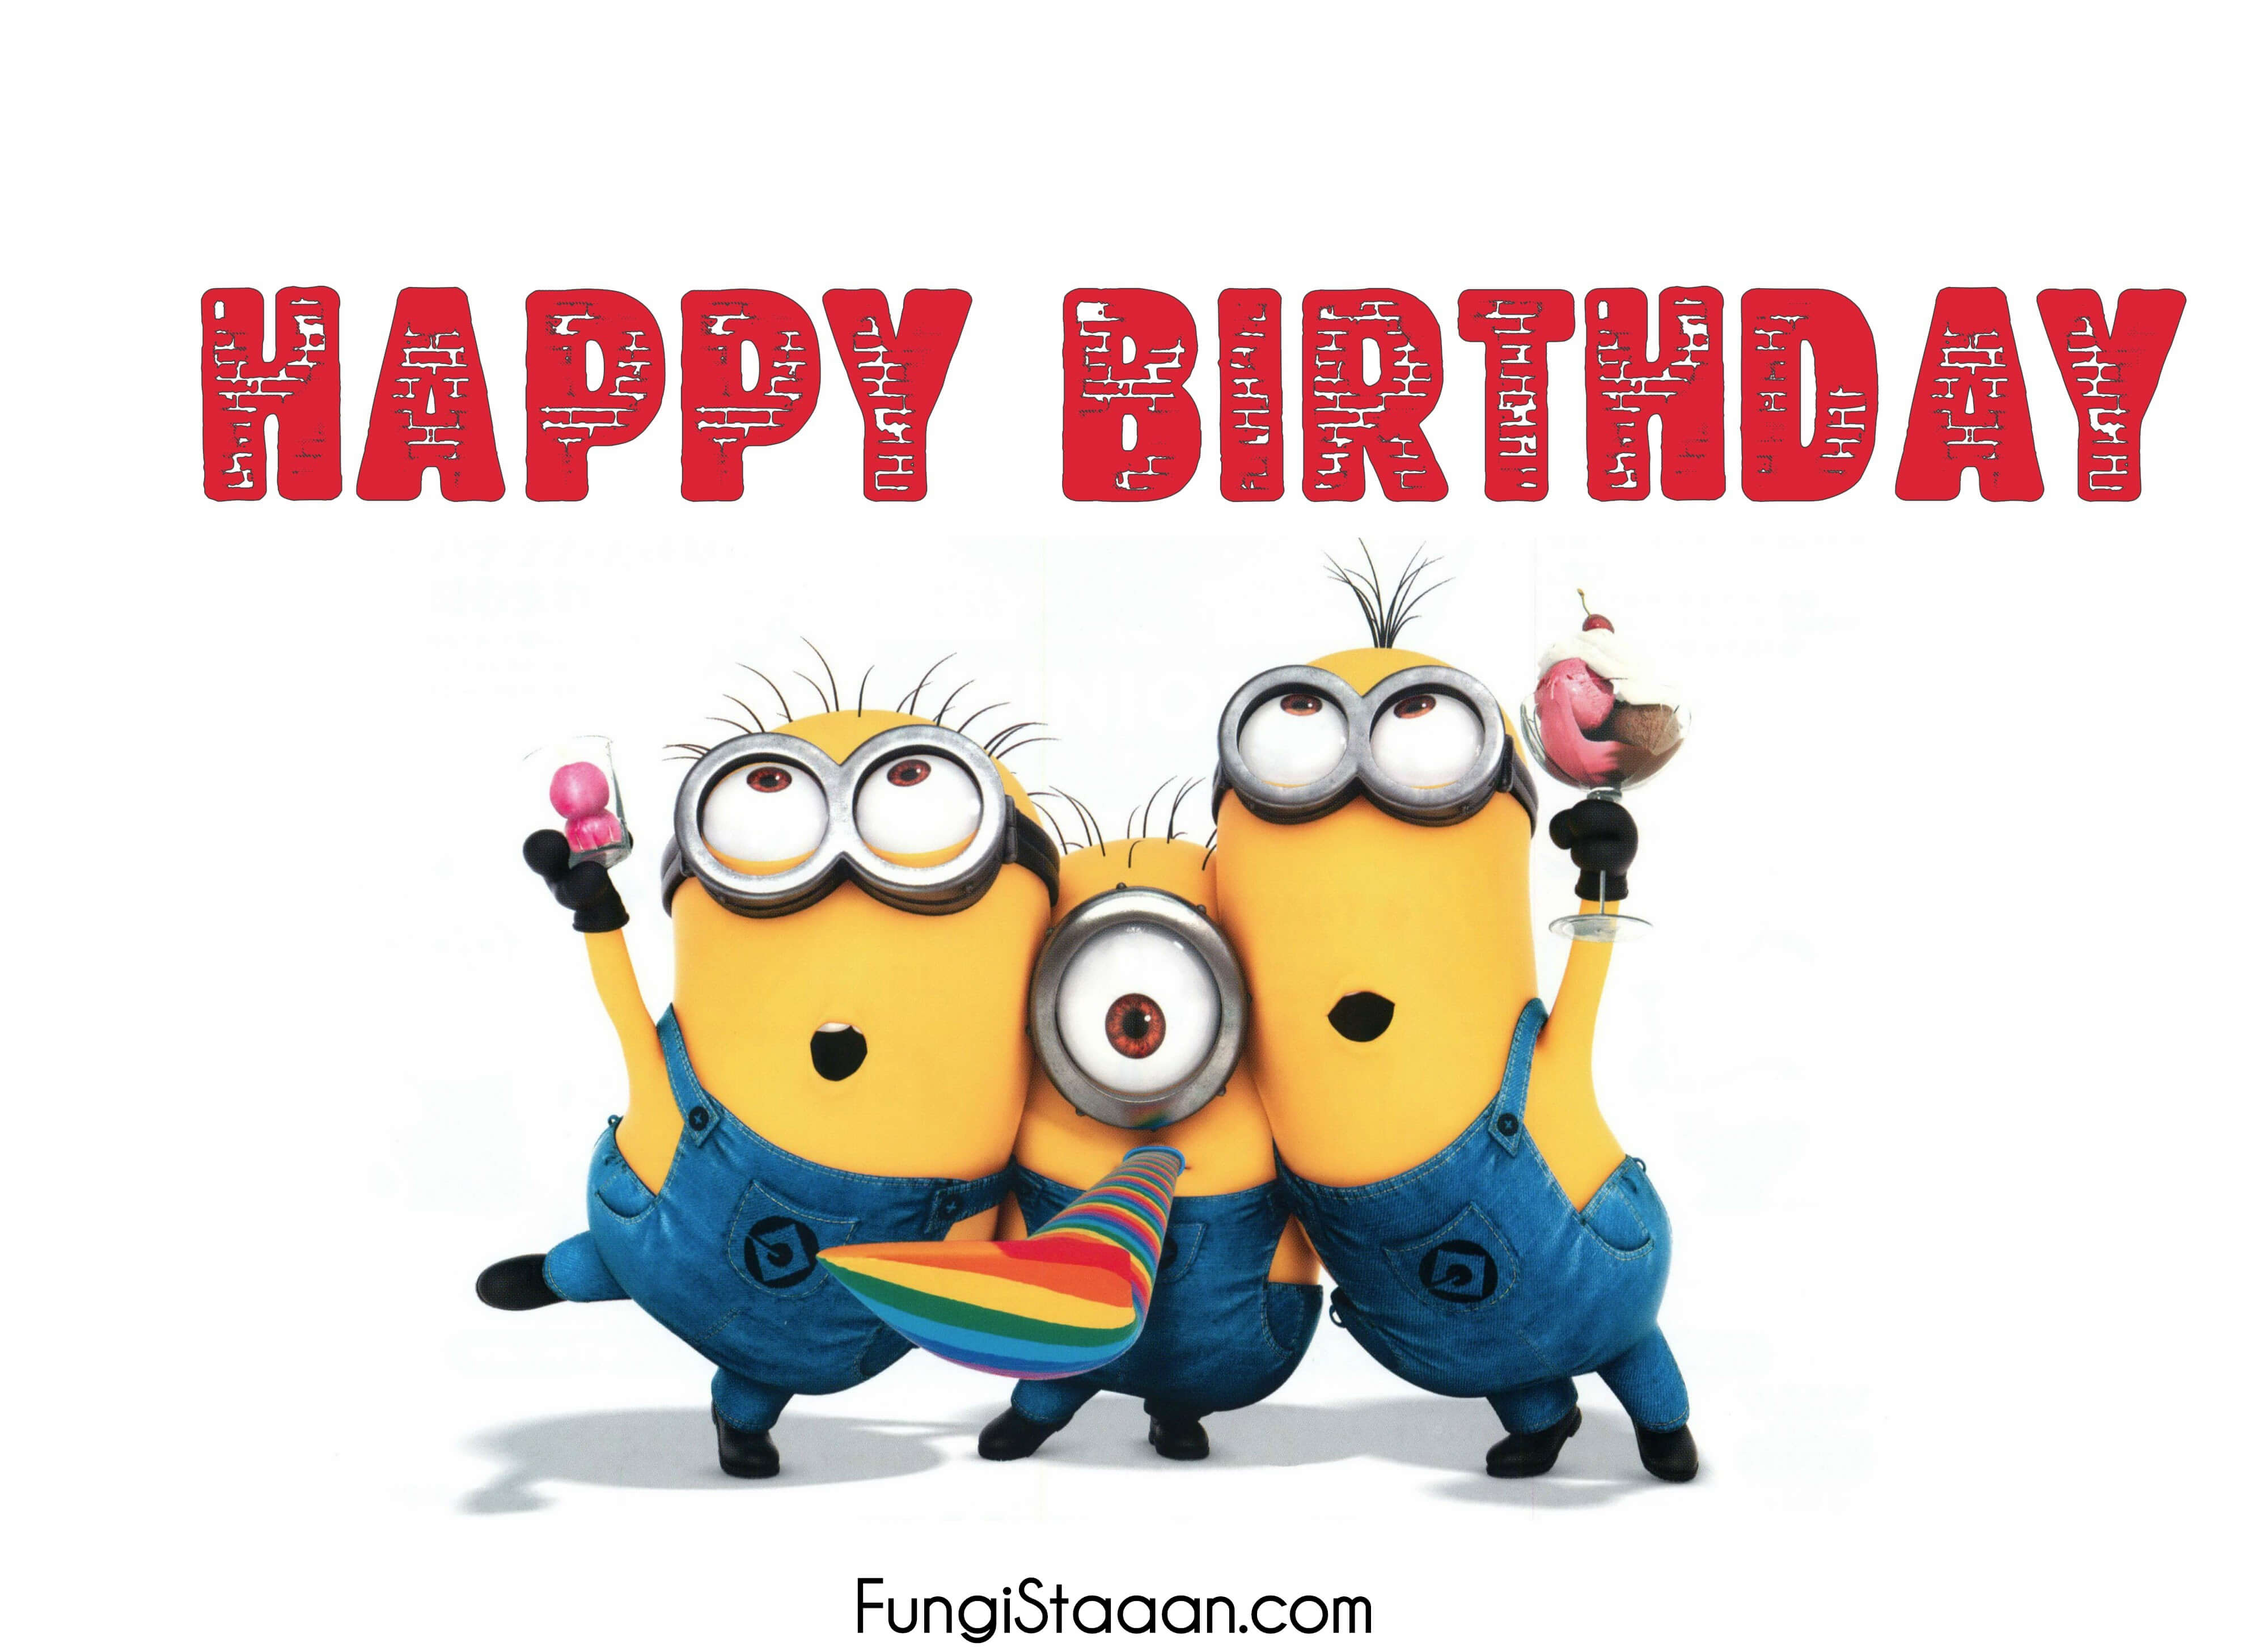 Birthday Images of Minions